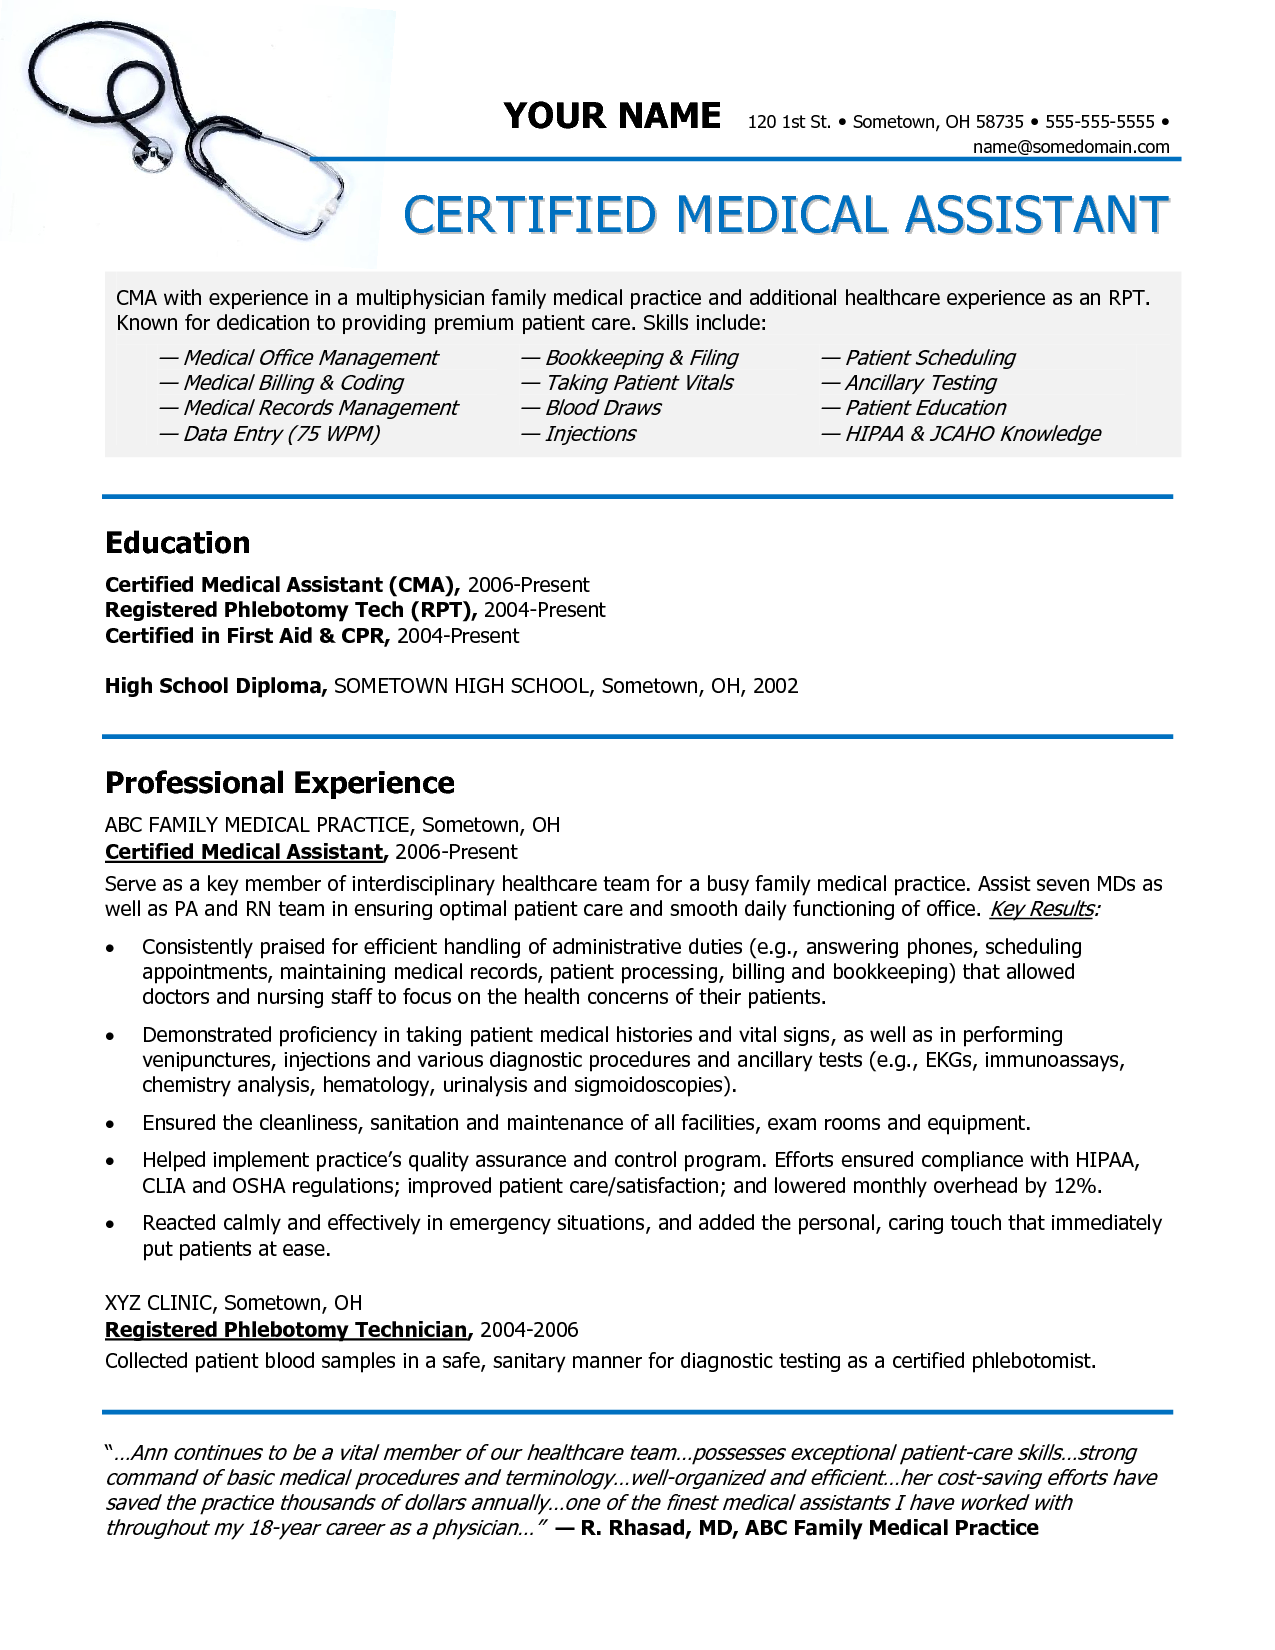 Objective For Resume Medical Assistant Medical Assistant Resume Sample, Medical  Resume Templates 14 Medical Assistant Resume Uxhandycom, Medical Assistant  ...  Resume For Medical School